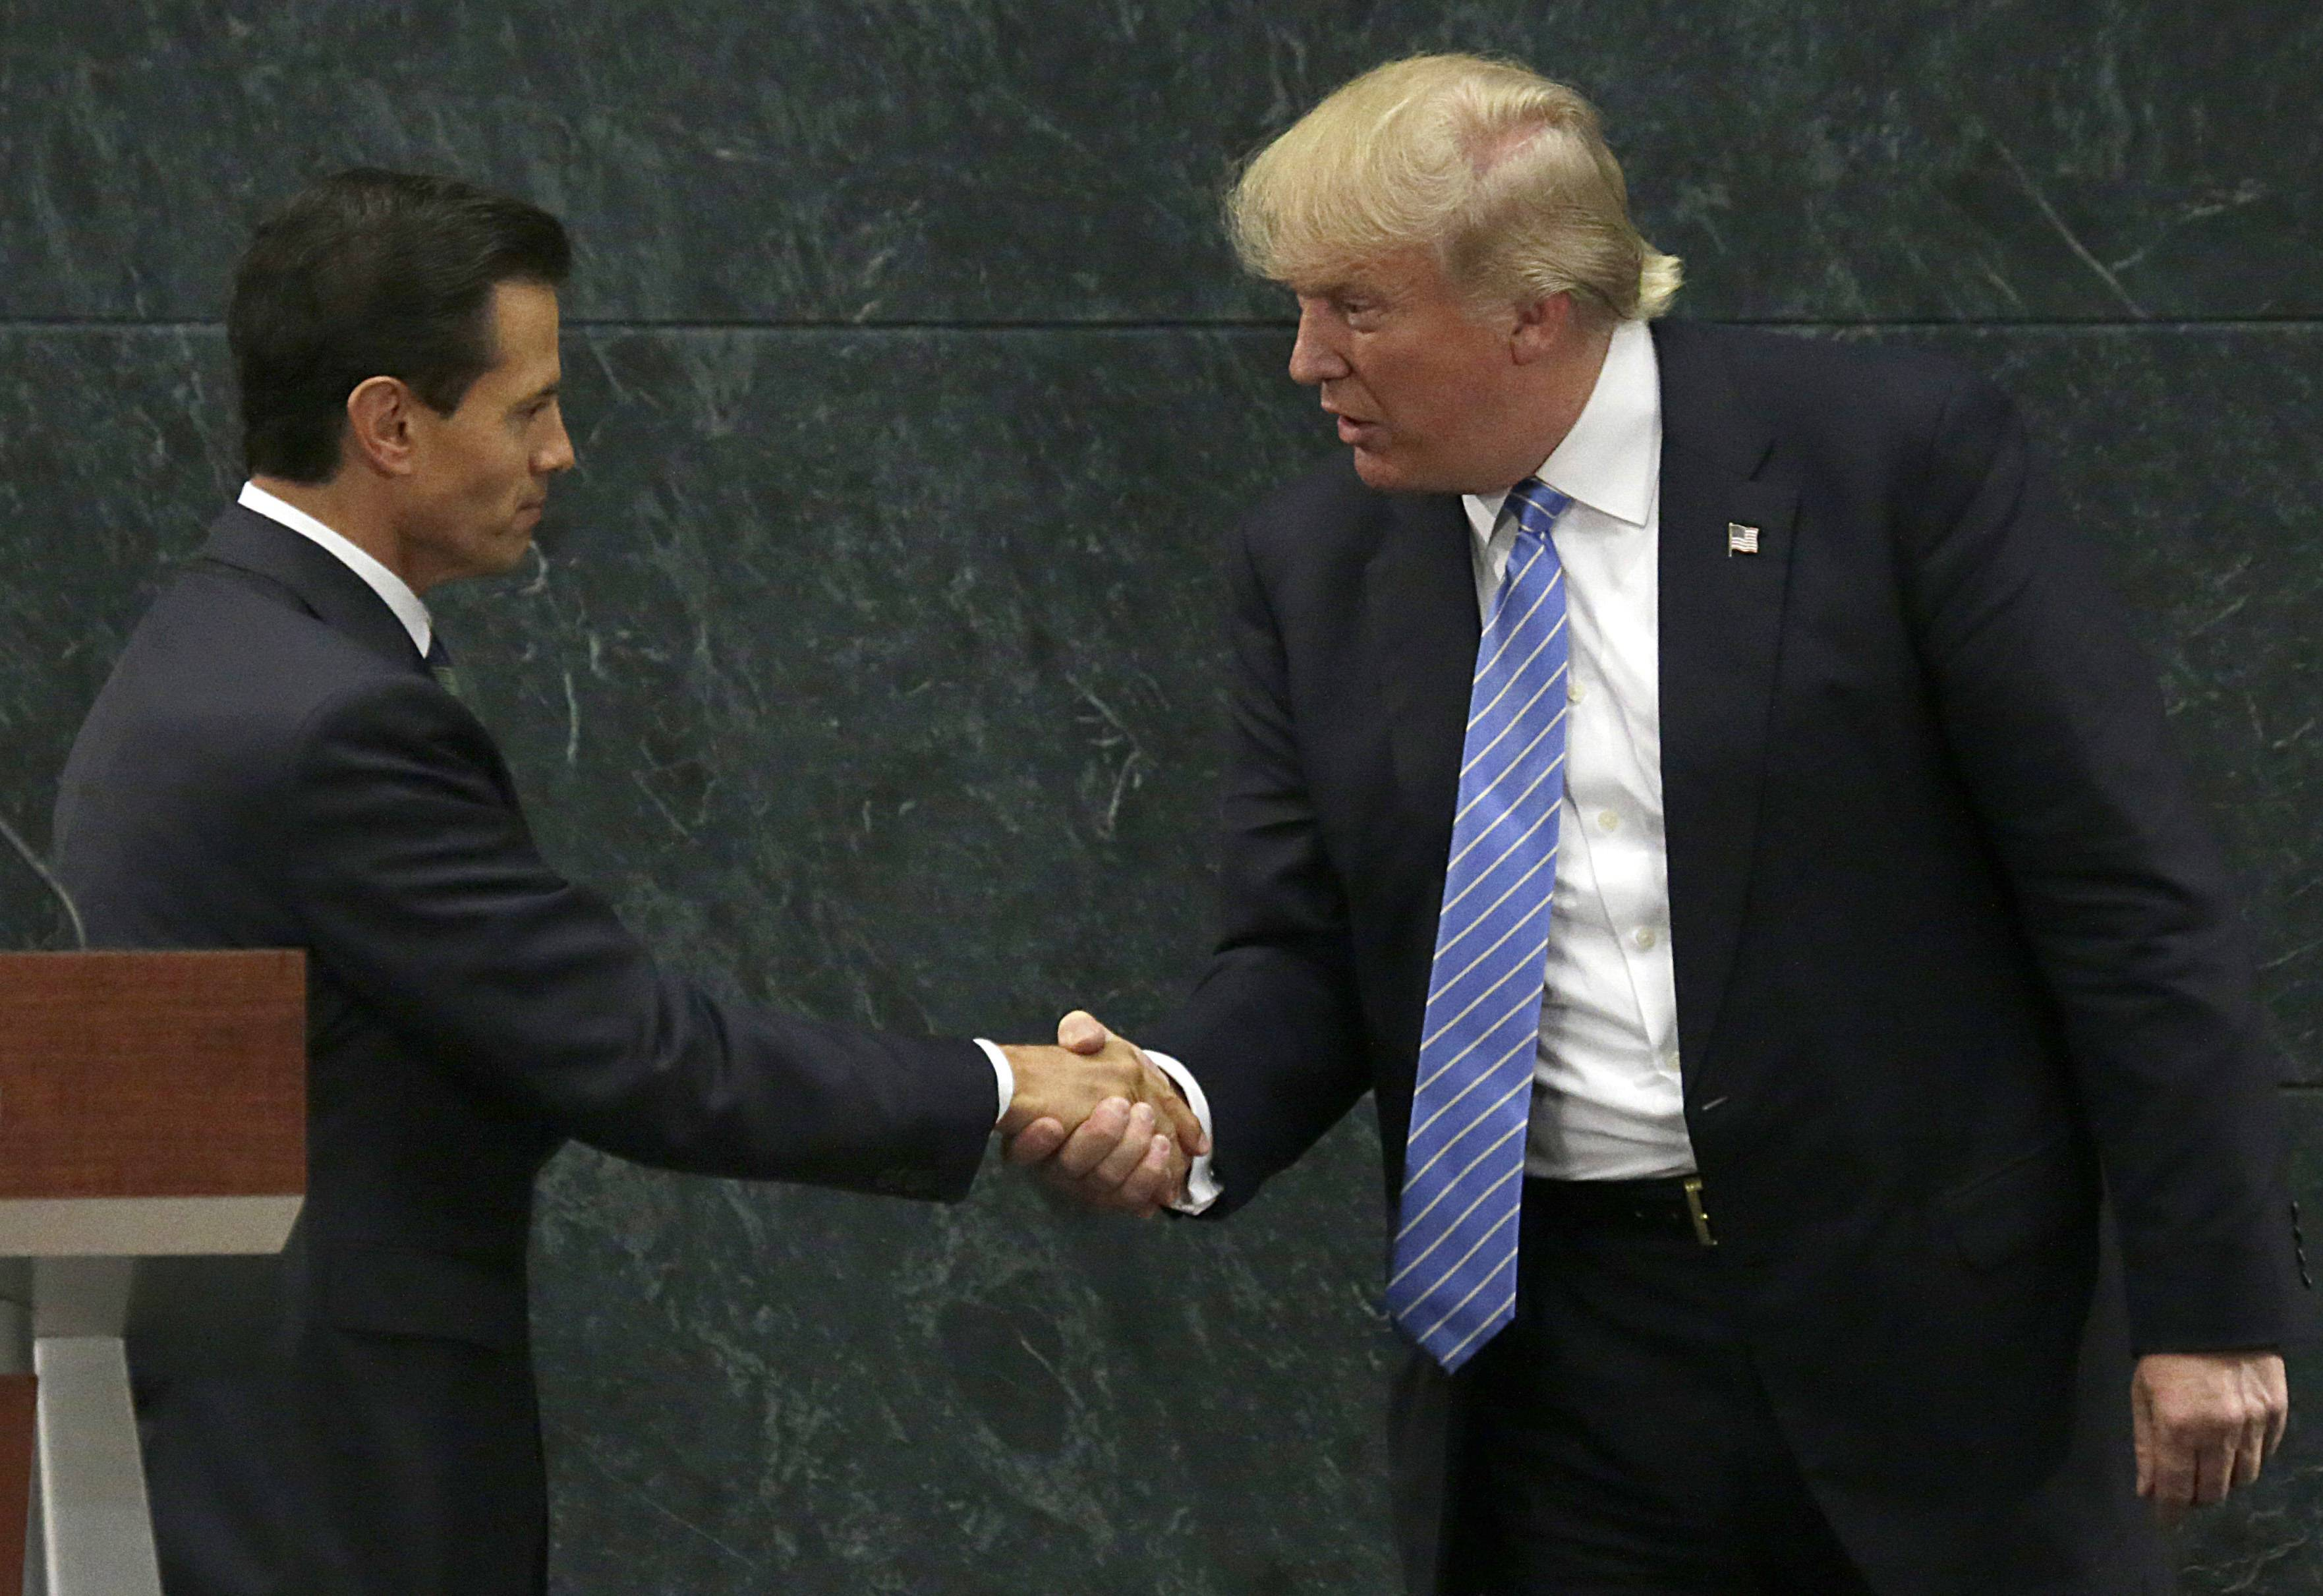 Mexico President Enrique Pena Nieto and Republican presidential nominee Donald Trump shake hands after a joint statement at Los Pinos, the presidential official residence, in Mexico City, Wednesday, Aug. 31, 2016. Trump is calling his surprise visit to Mexico City Wednesday a 'great honor.' The Republican presidential nominee said after meeting with Pena Nieto that the pair had a substantive, direct and constructive exchange of ideas.v(AP Photo/Marco Ugarte)